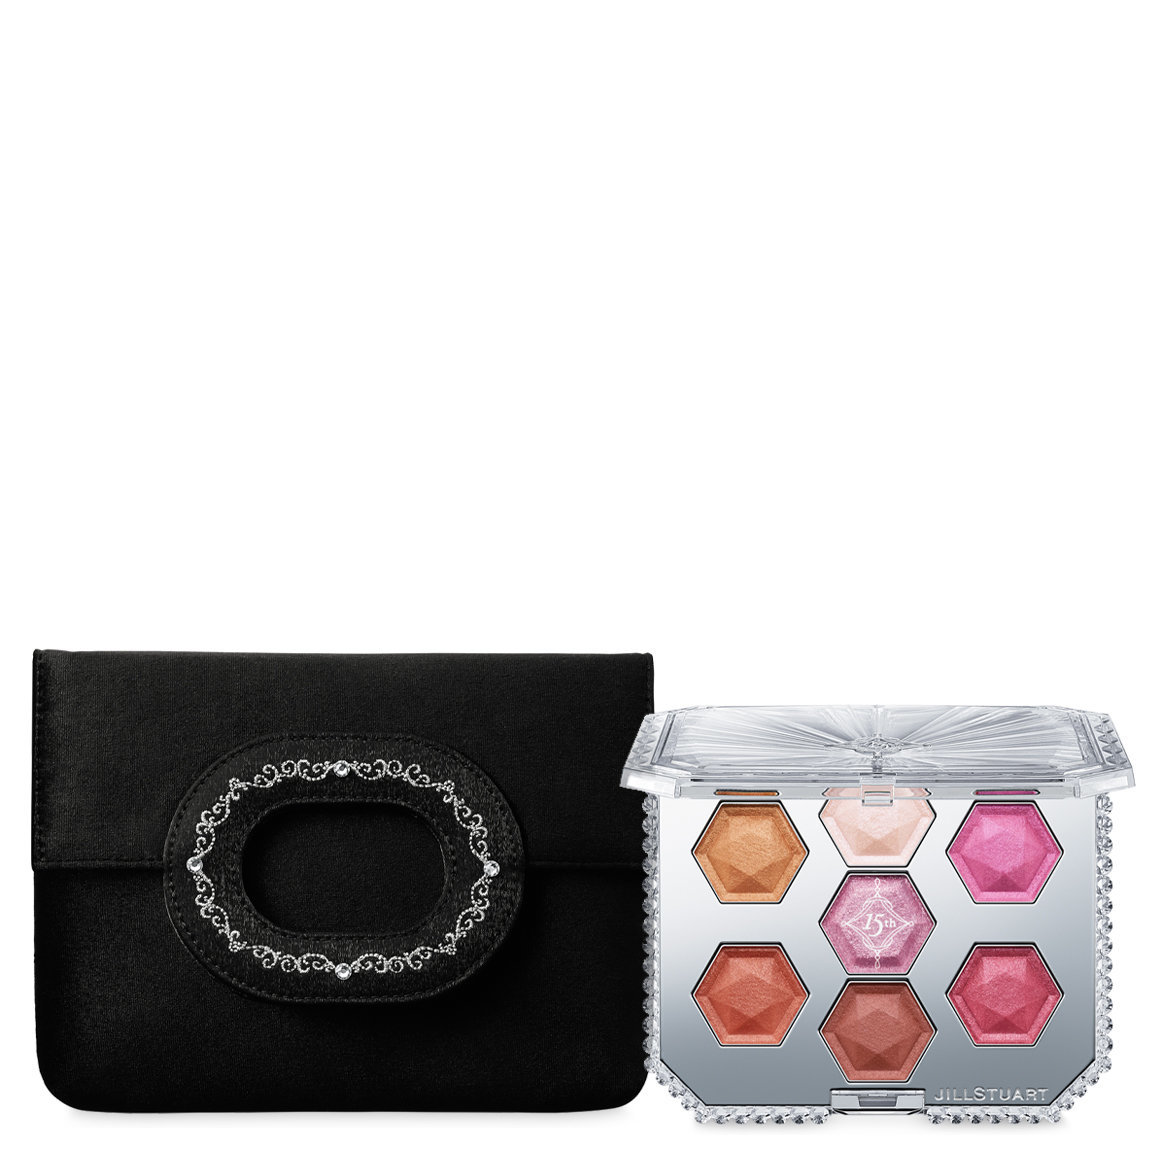 JILL STUART Beauty 15th Anniversary Eyeshadow Compact alternative view 1 - product swatch.